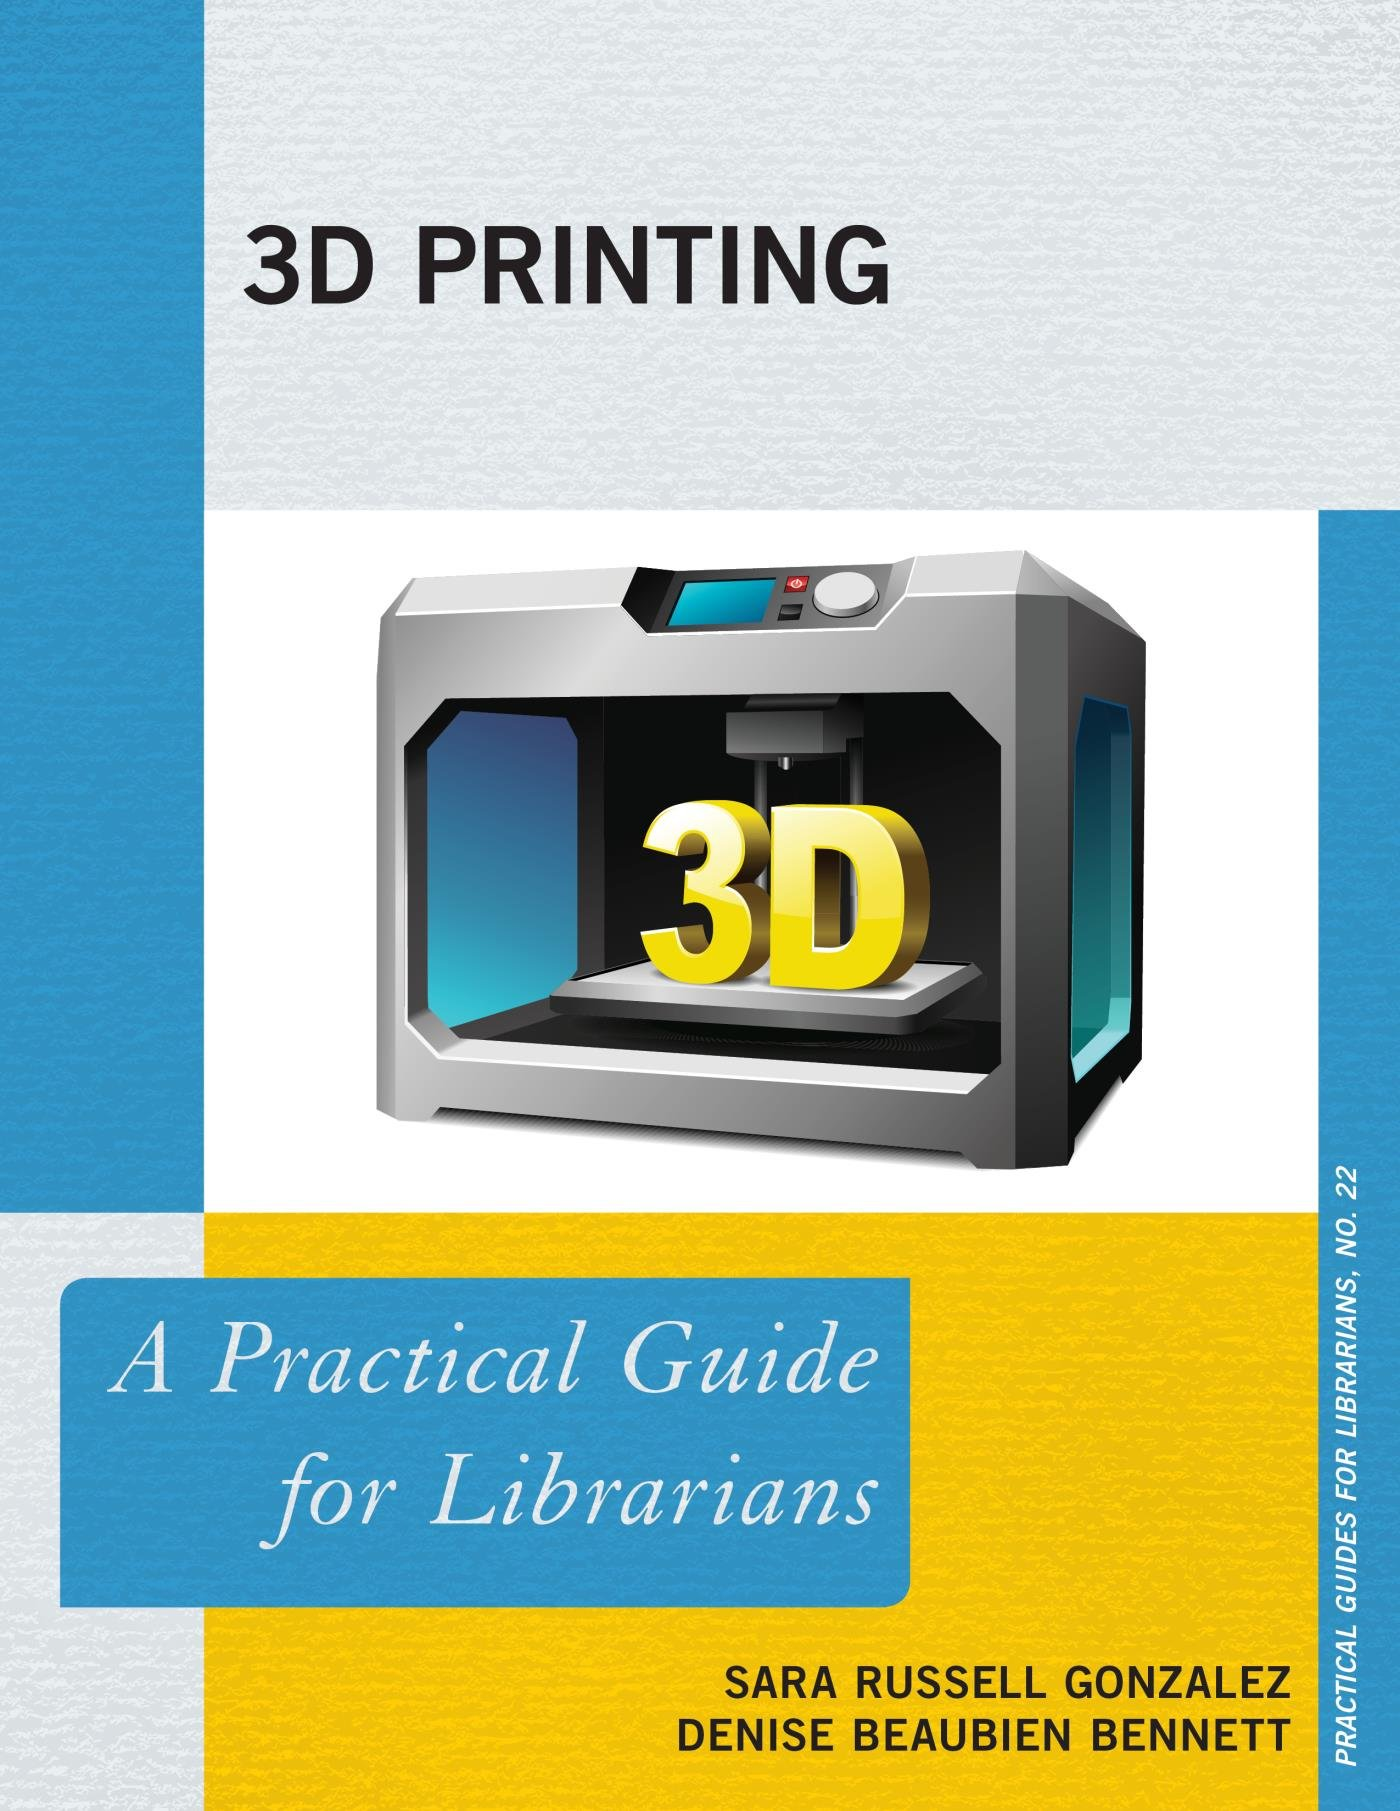 Image Of3D Printing: A Practical Guide For Librarians (Practical Guides For Librarians Book 22) (English Edition)